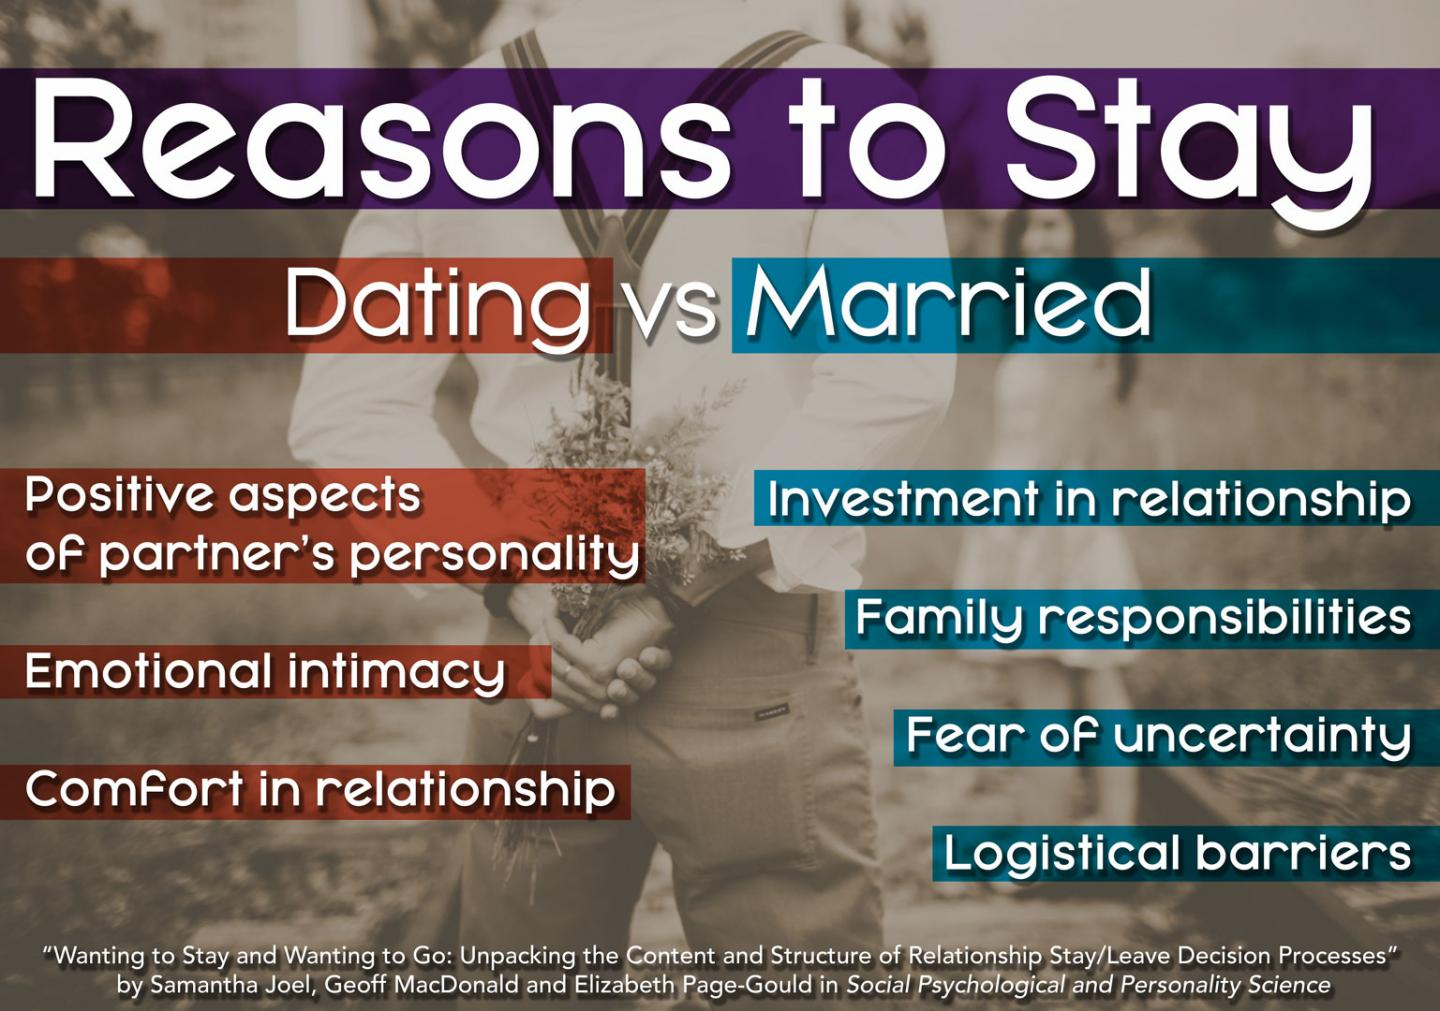 Reasons to Stay Dating vs Married